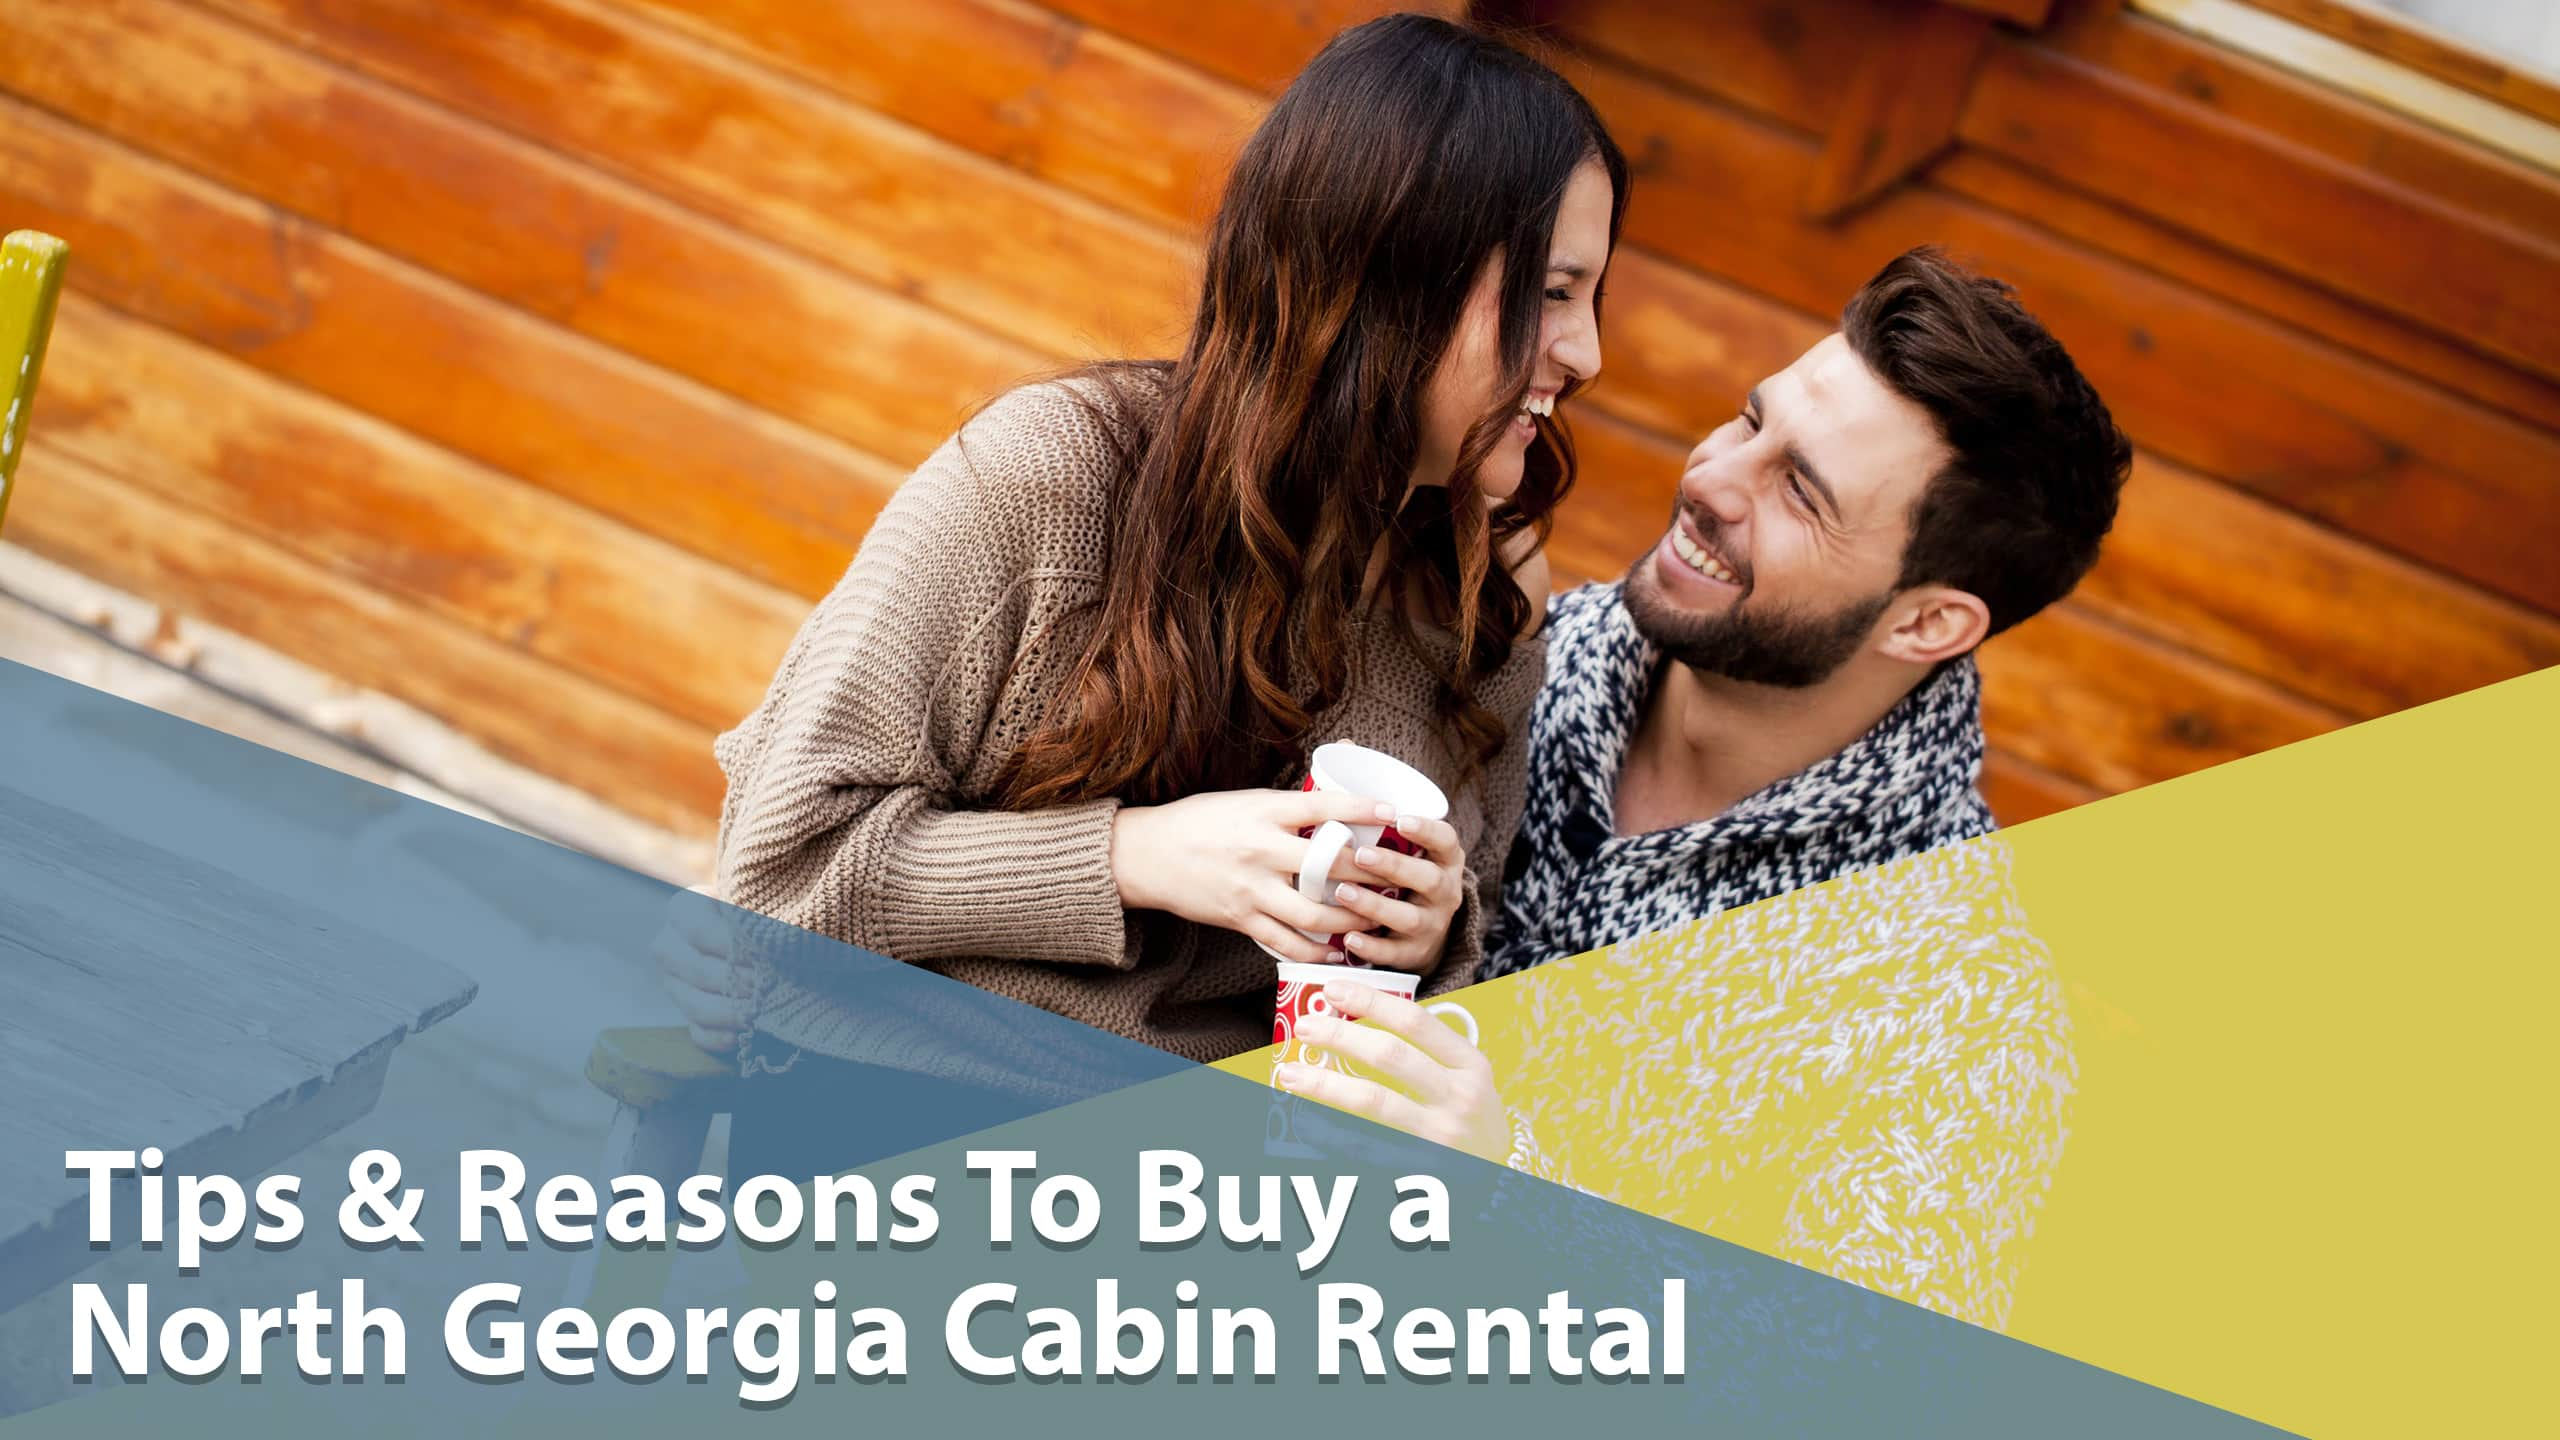 Tips-and-Reasons-To-Buy-a-Cabin-Rental-LARGE_1